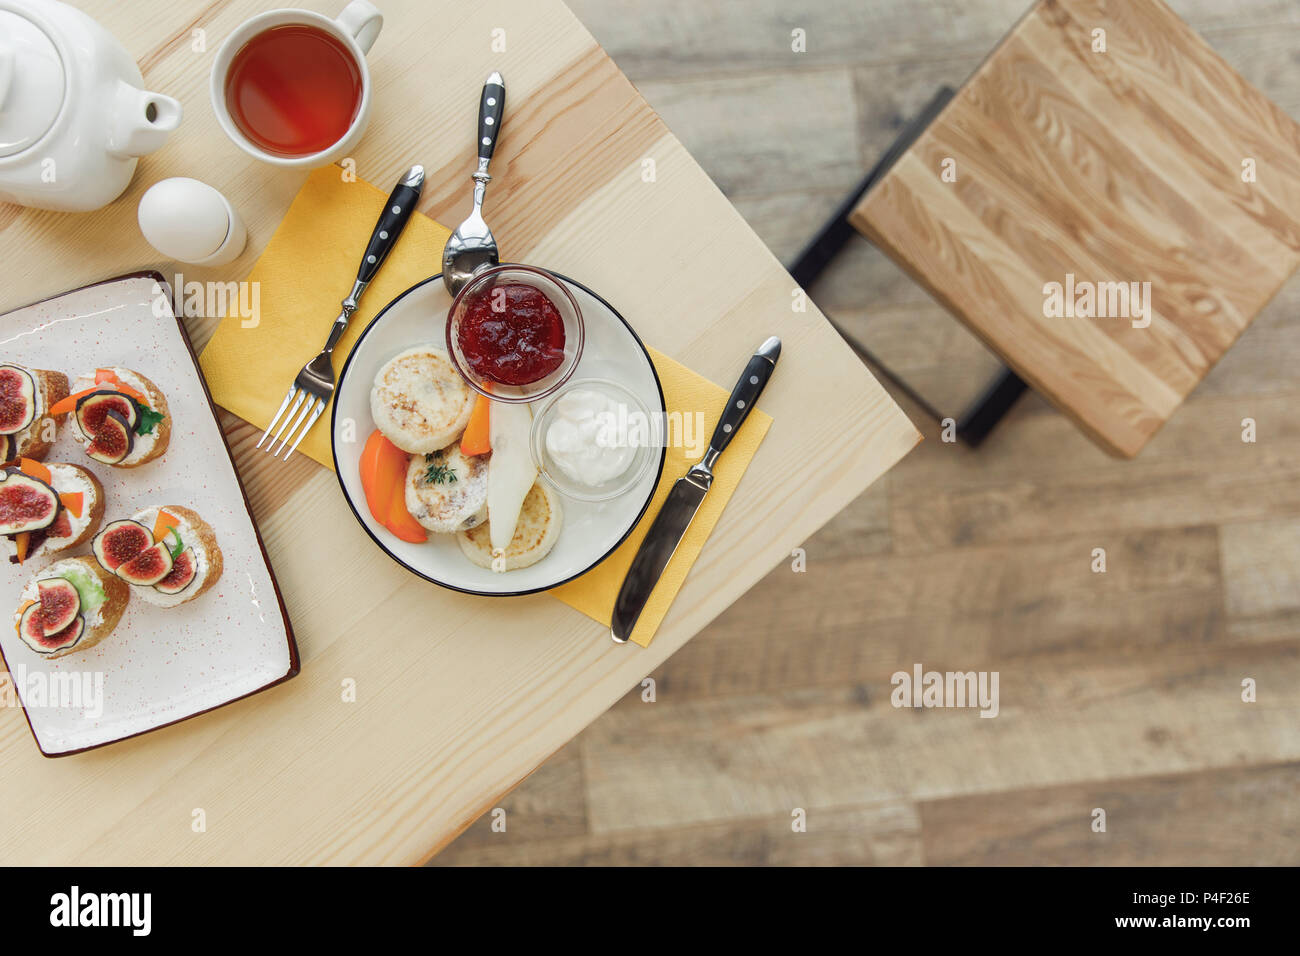 top view of healthy delicious breakfast with tea set on wooden table - Stock Image